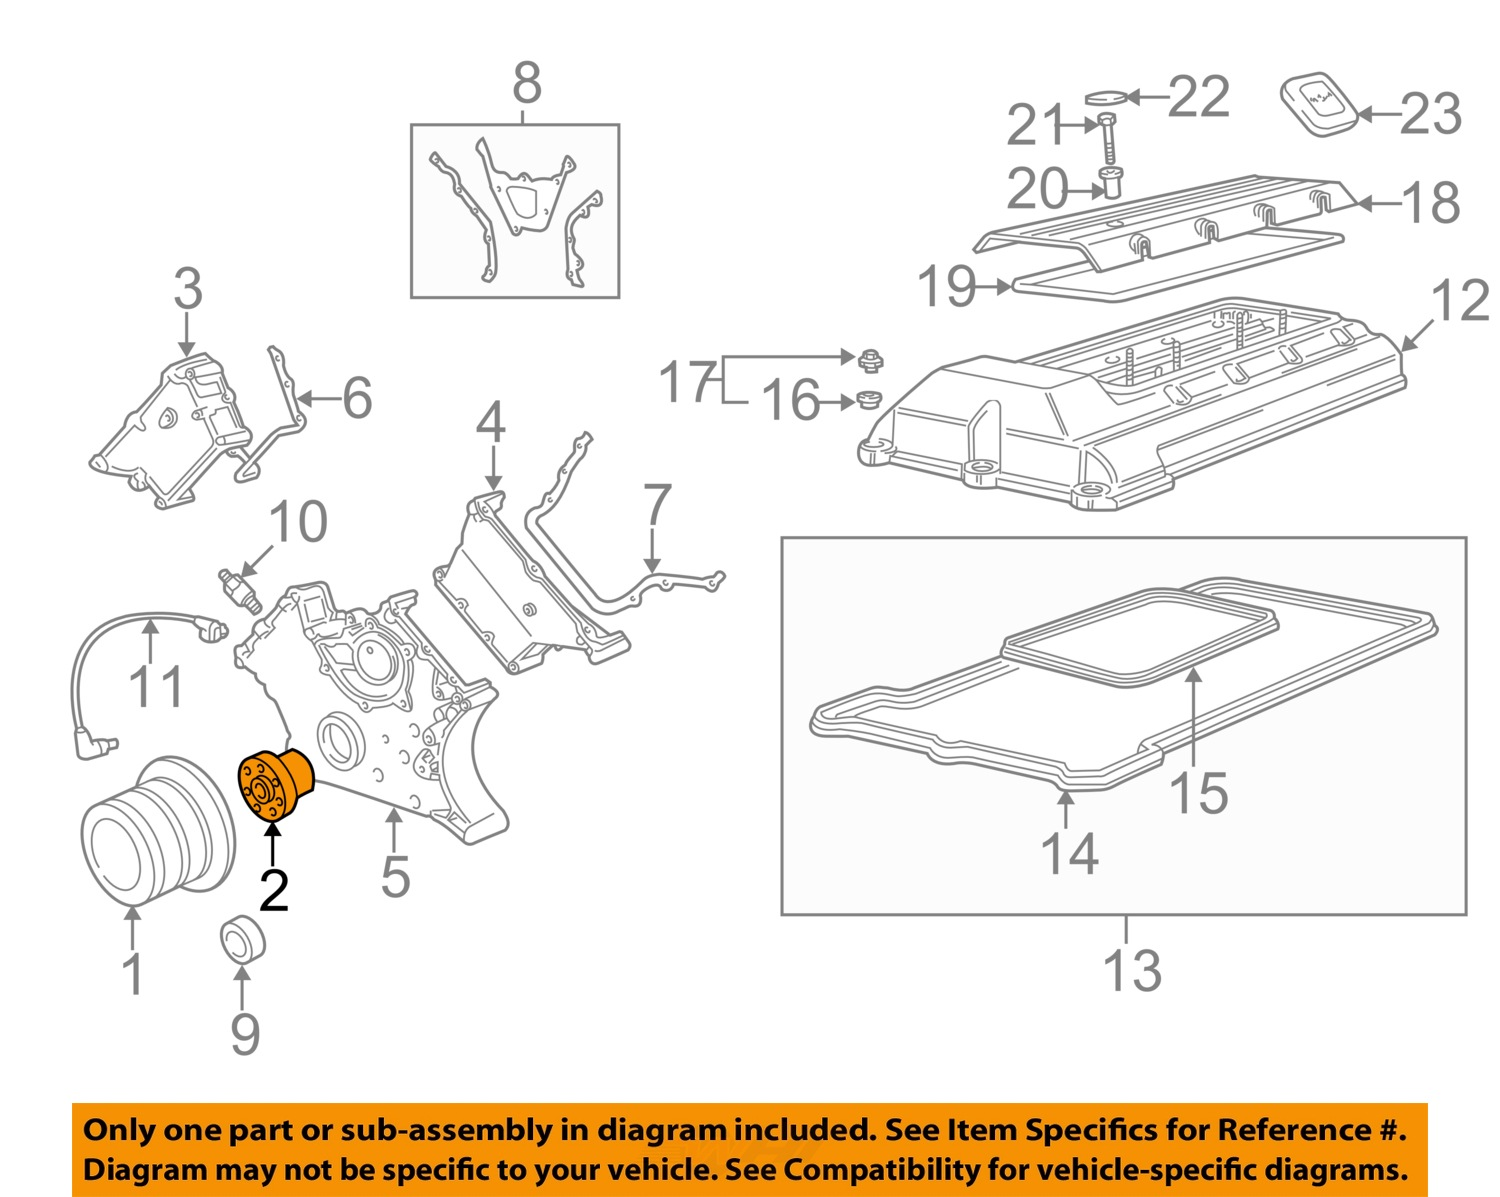 97 bmw engine diagram 97 maxima engine diagram bmw oem 97-03 540i 4.4l-v8-engine harmonic balancer ...